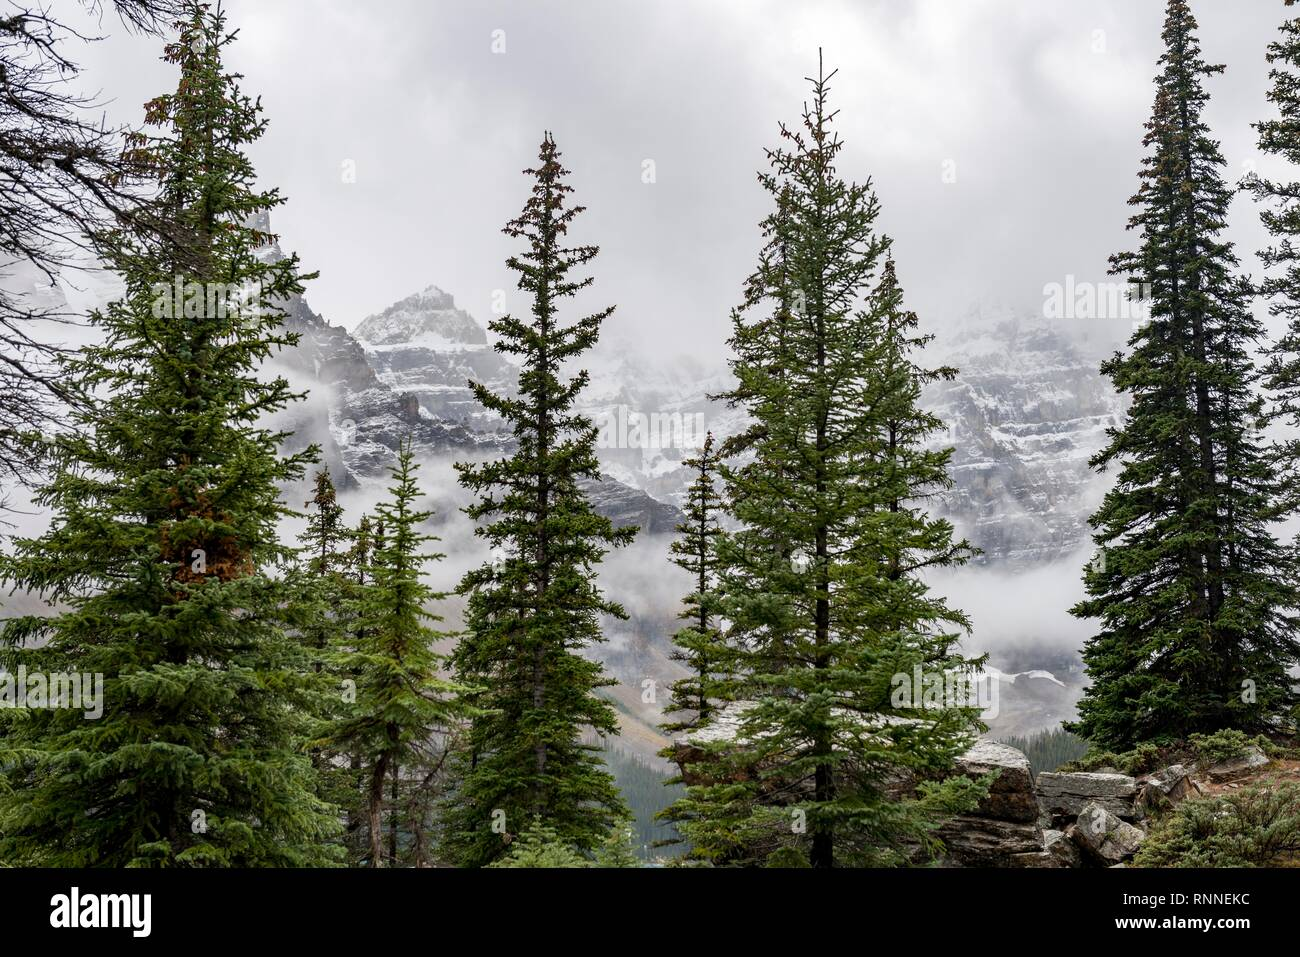 Snow-capped mountain peaks with fog behind conifers, Banff National Park, Alberta, Canada - Stock Image